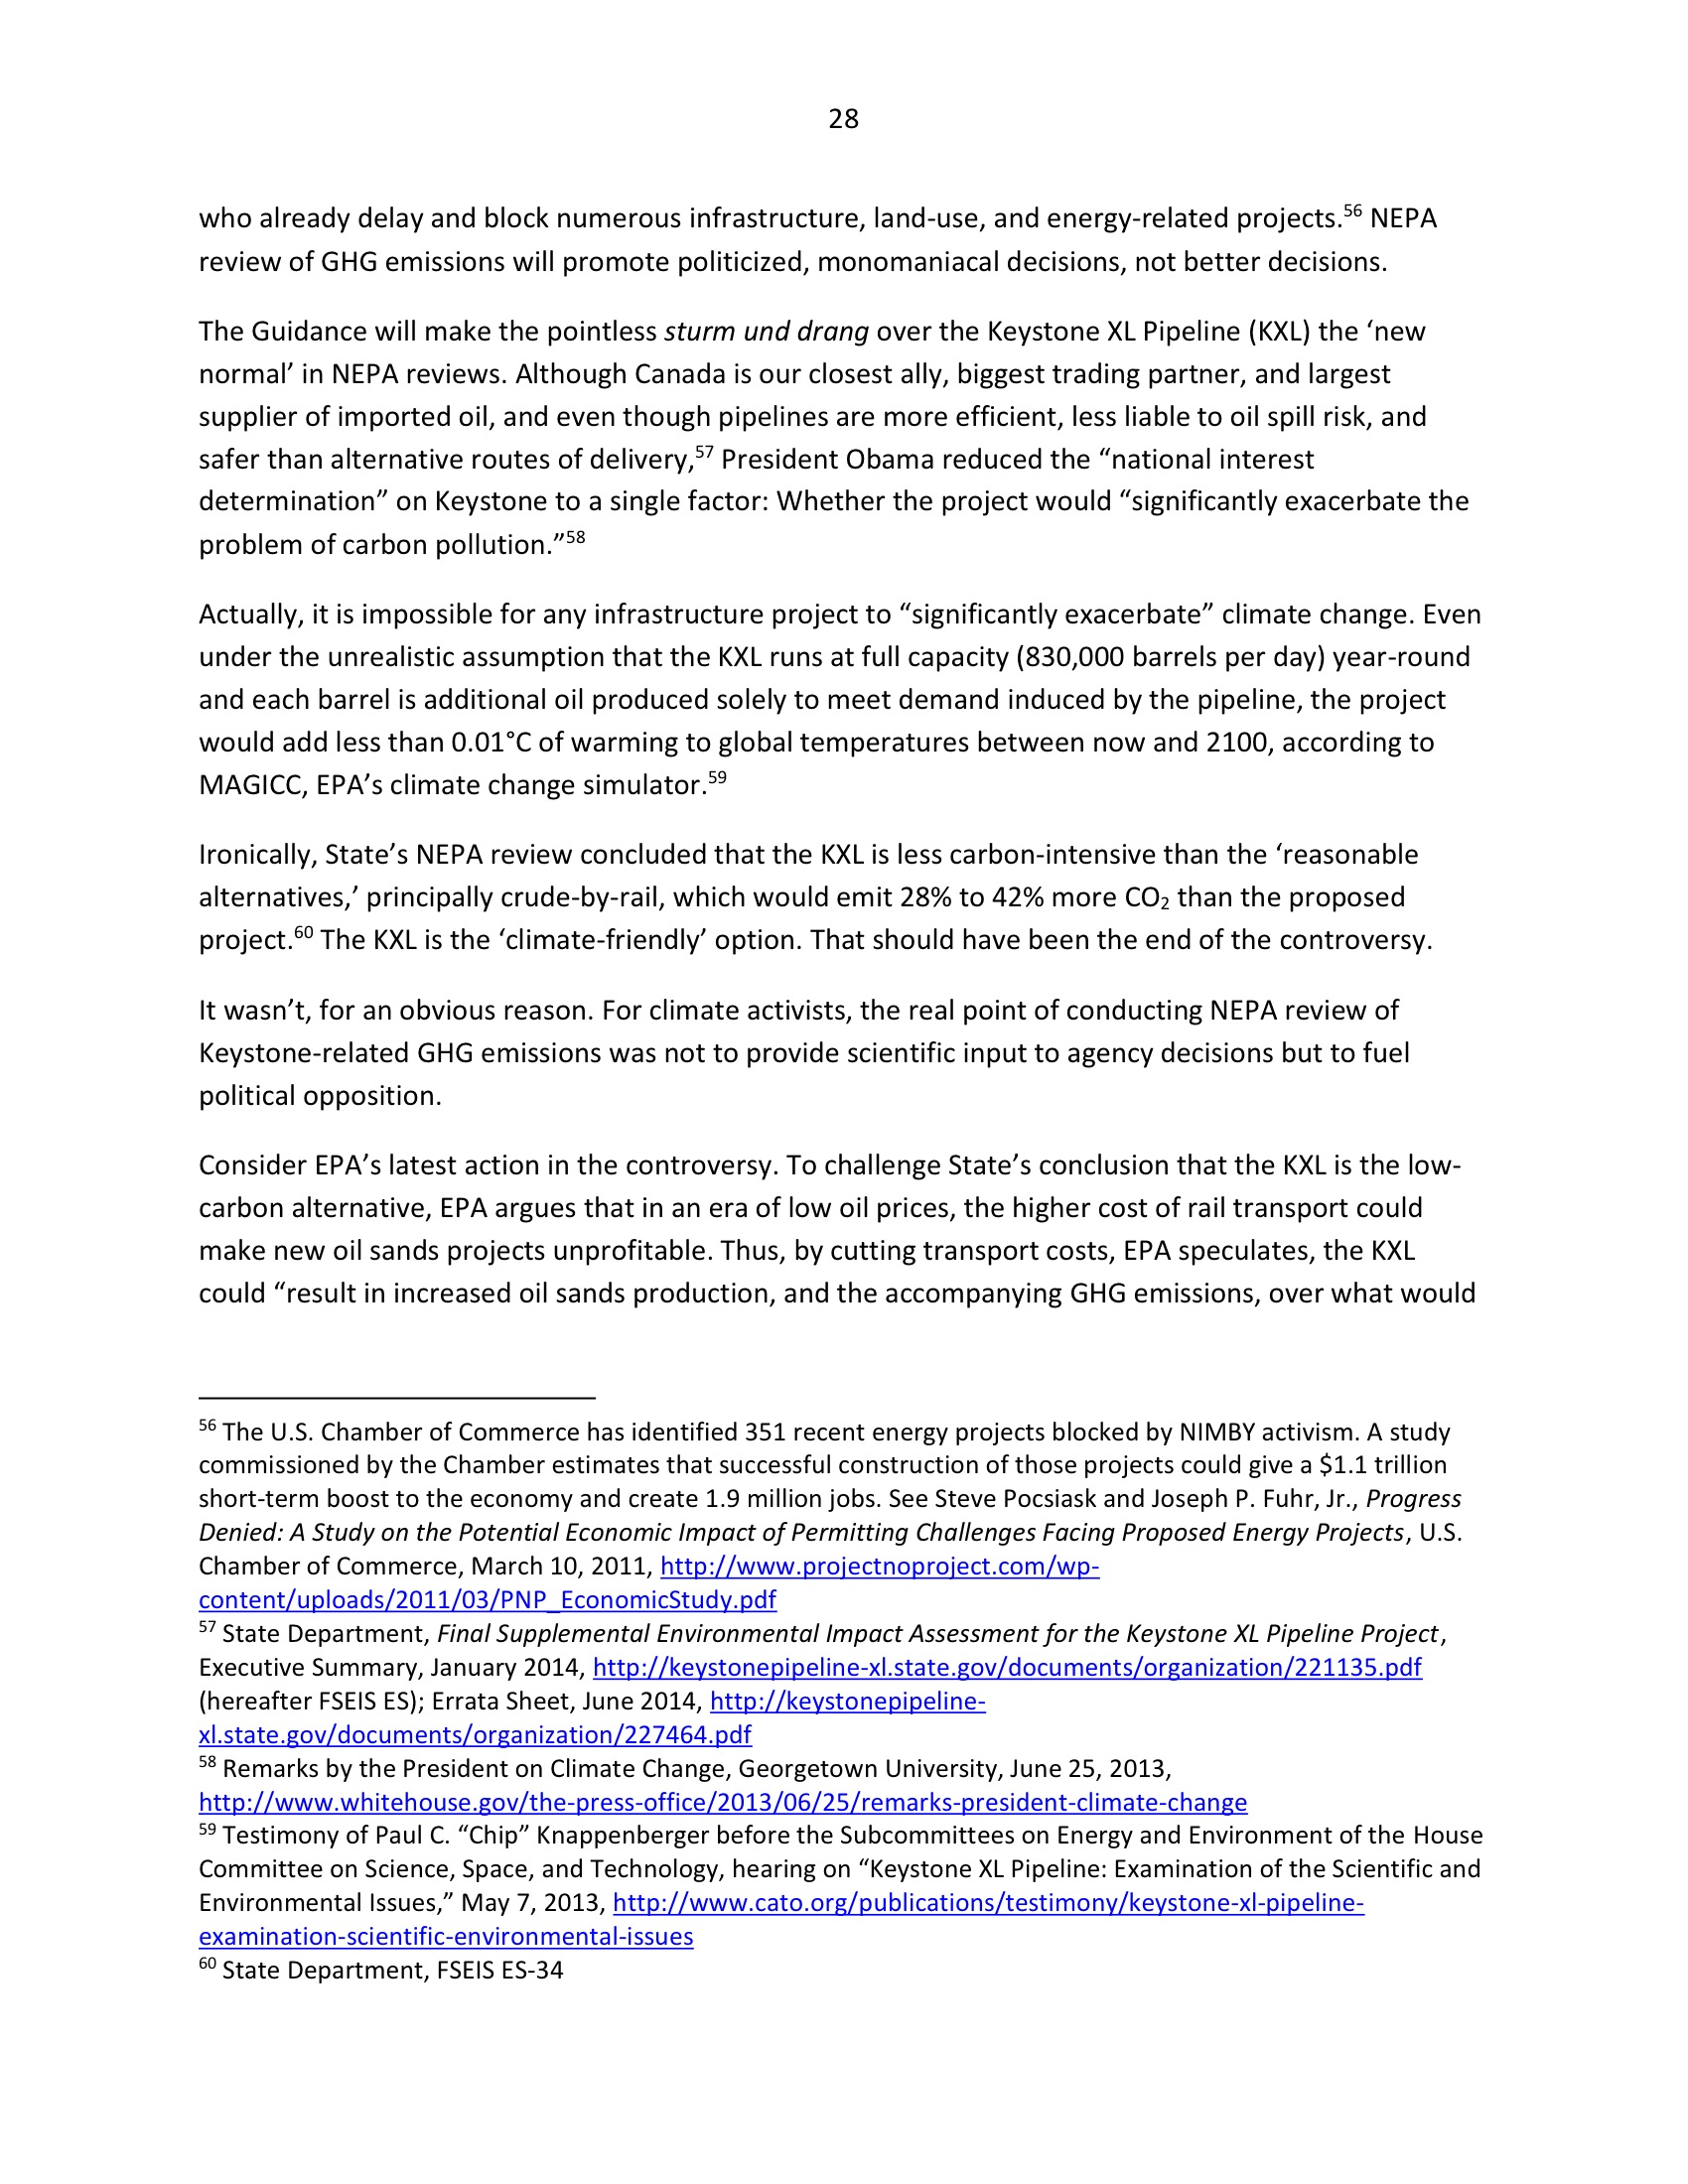 Marlo Lewis Competitive Enterprise Institute and Free Market Allies Comment Letter on NEPA GHG Guidance Document 100-28